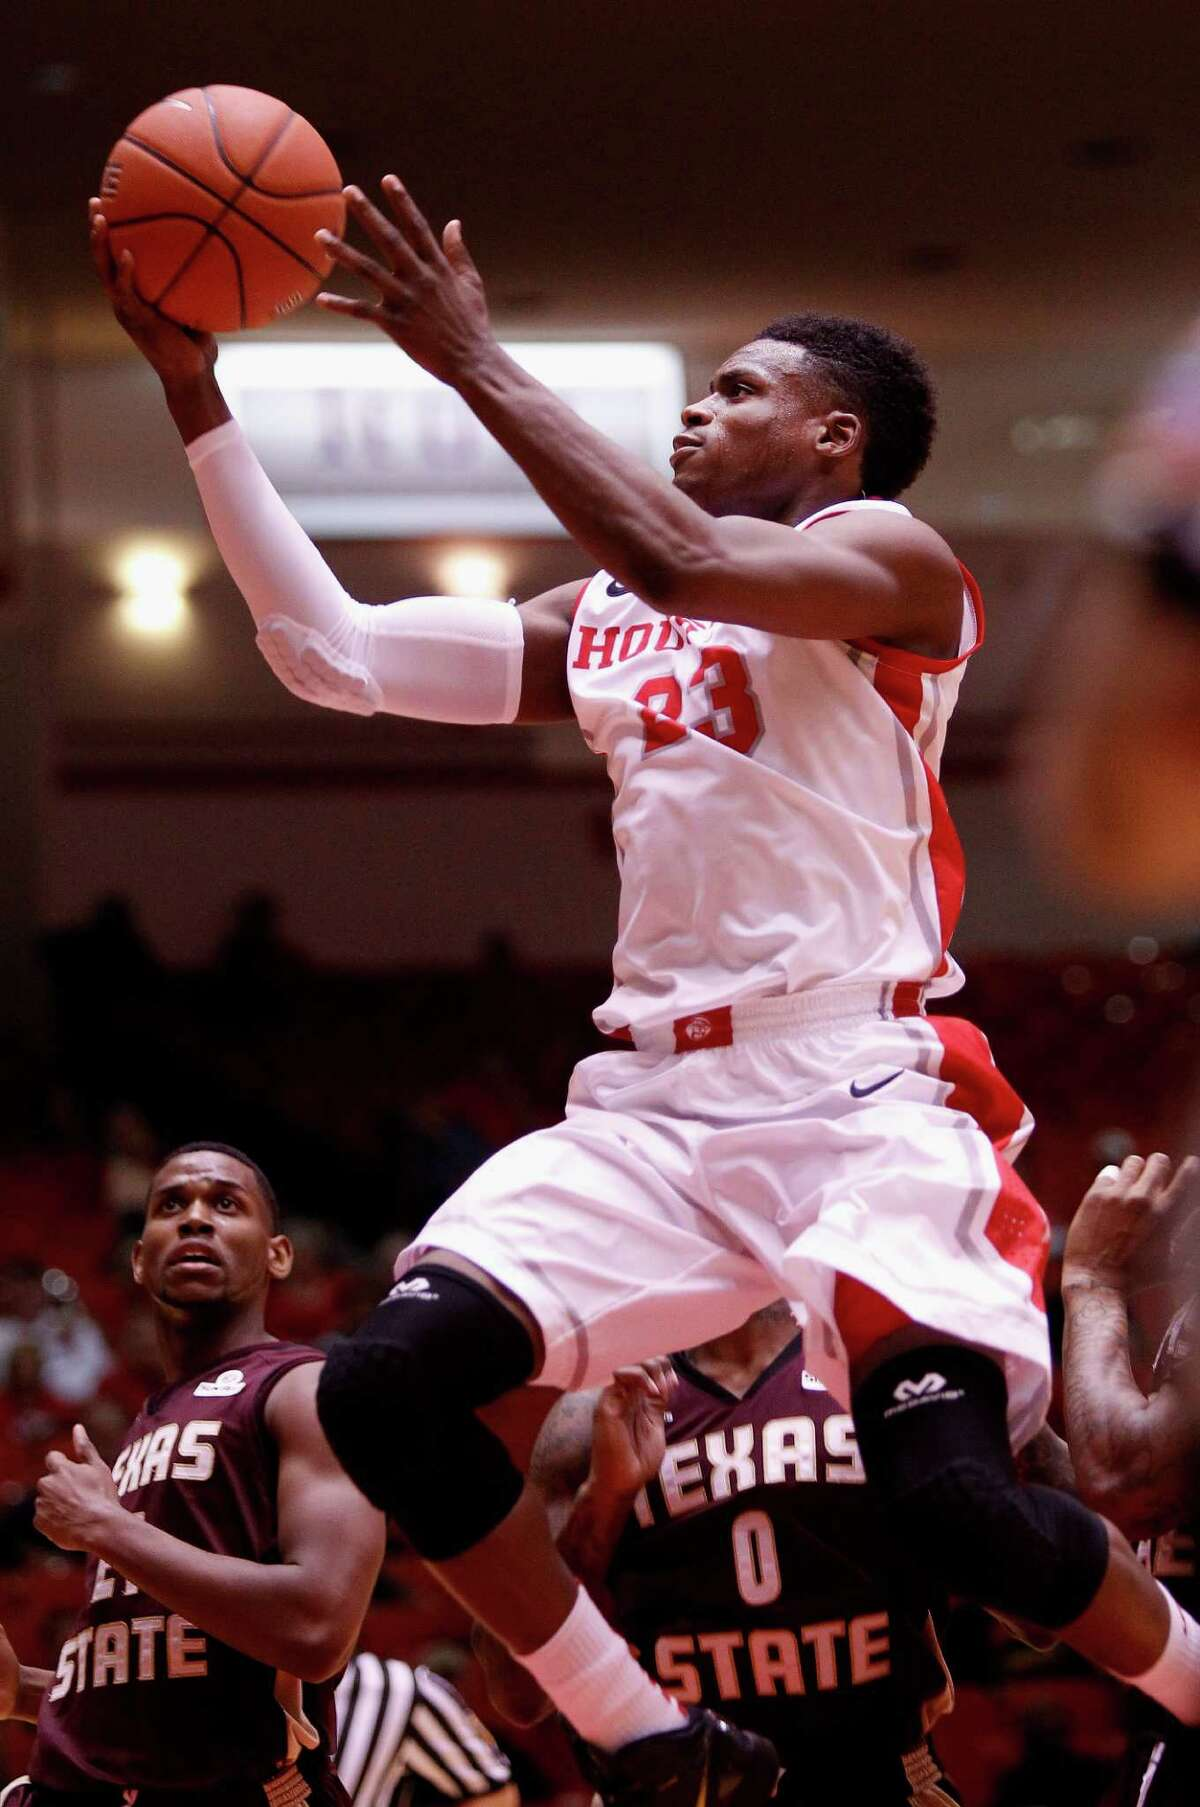 Houston Cougars guard Danuel House drives to the basket past Texas State Bobcats forward Emani Gant in the first halfd during an NCAA mens basketball game between the Texas State Bobcats and the University of Houston Cougars at Hofheinz Pavilion, Friday, Nov. 8, 2013. (Bob Levey/Special to the Chronicle)